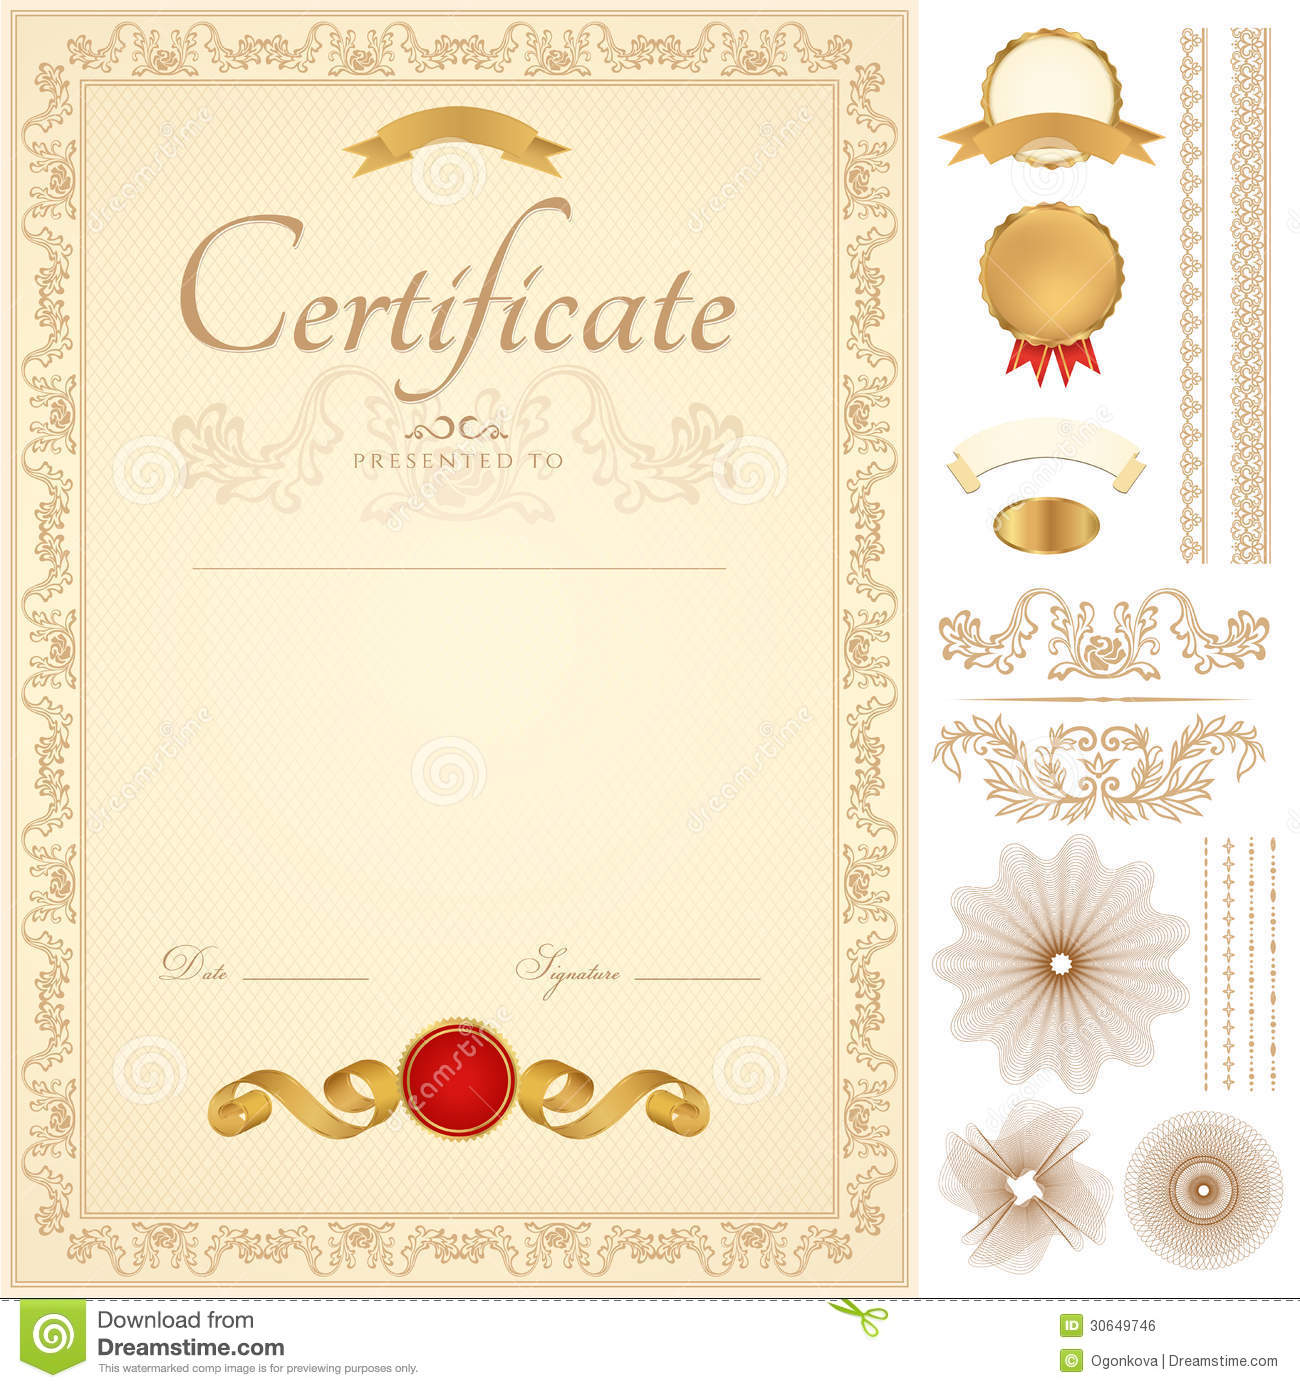 Certificate diploma background golden border stock vector certificate diploma background golden border alramifo Choice Image